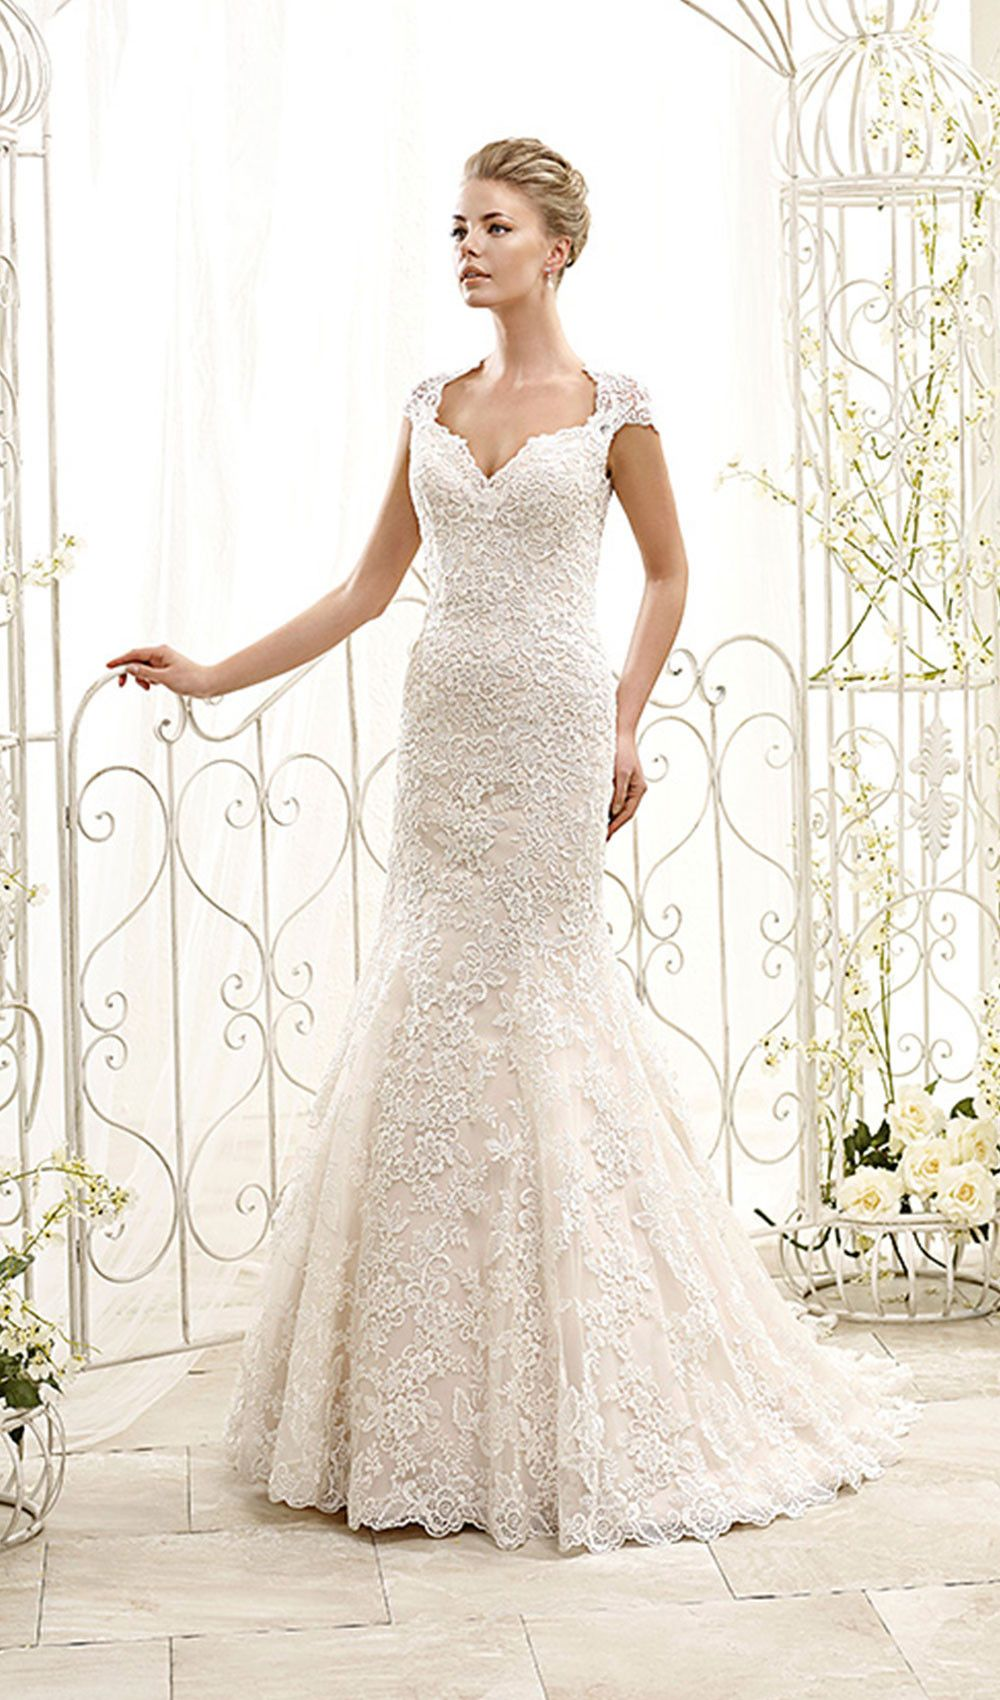 Try this breathtaking elegant lace wedding dress with incredible try this breathtaking elegant lace wedding dress with incredible back and cap sleeves from eddy k bridal available at schaffers in scottsdale arizona ombrellifo Gallery